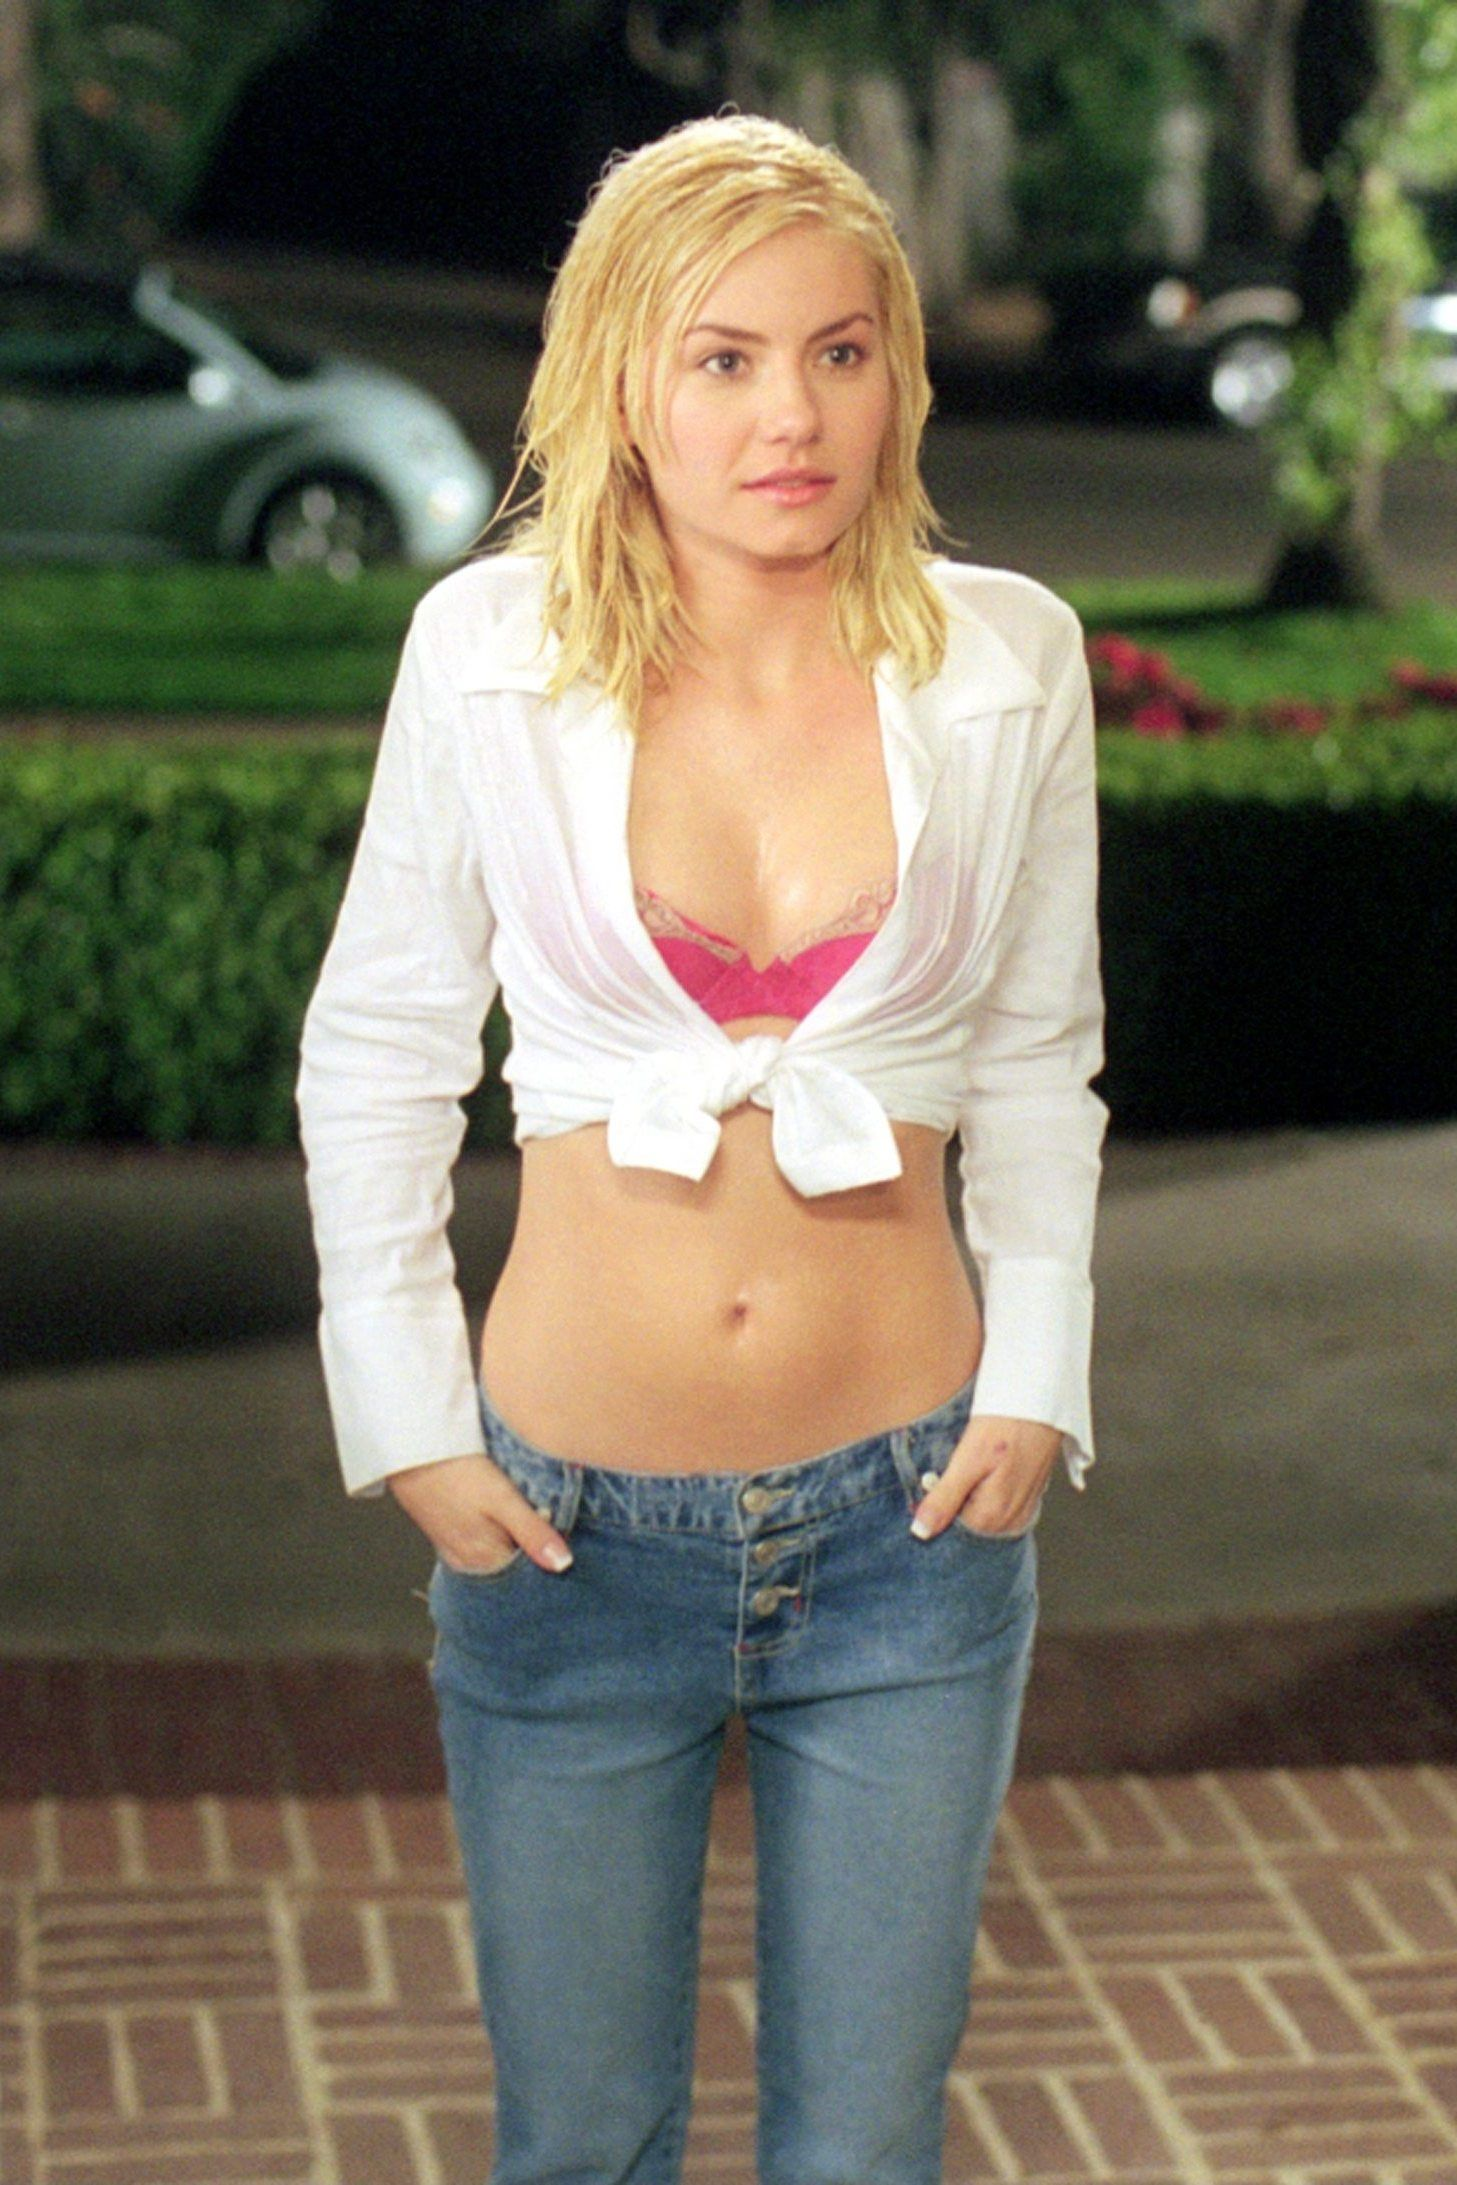 Porn comic elisha cuthbert hot in socks fucks wife photos